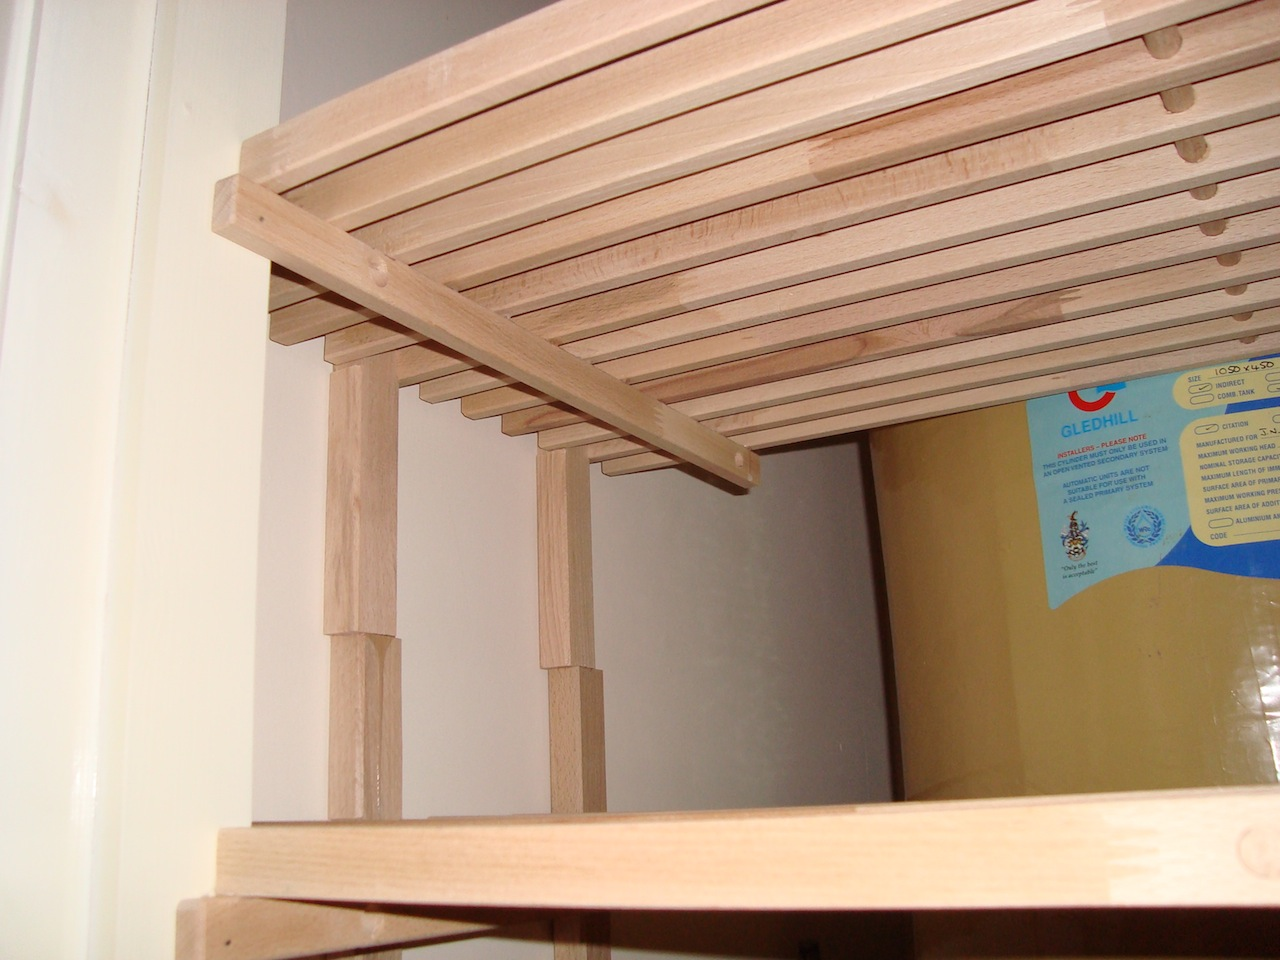 Amazing photo of repeat steps 3 – 6 for each shelf gluing the legs in position  with #1D4D95 color and 1280x960 pixels